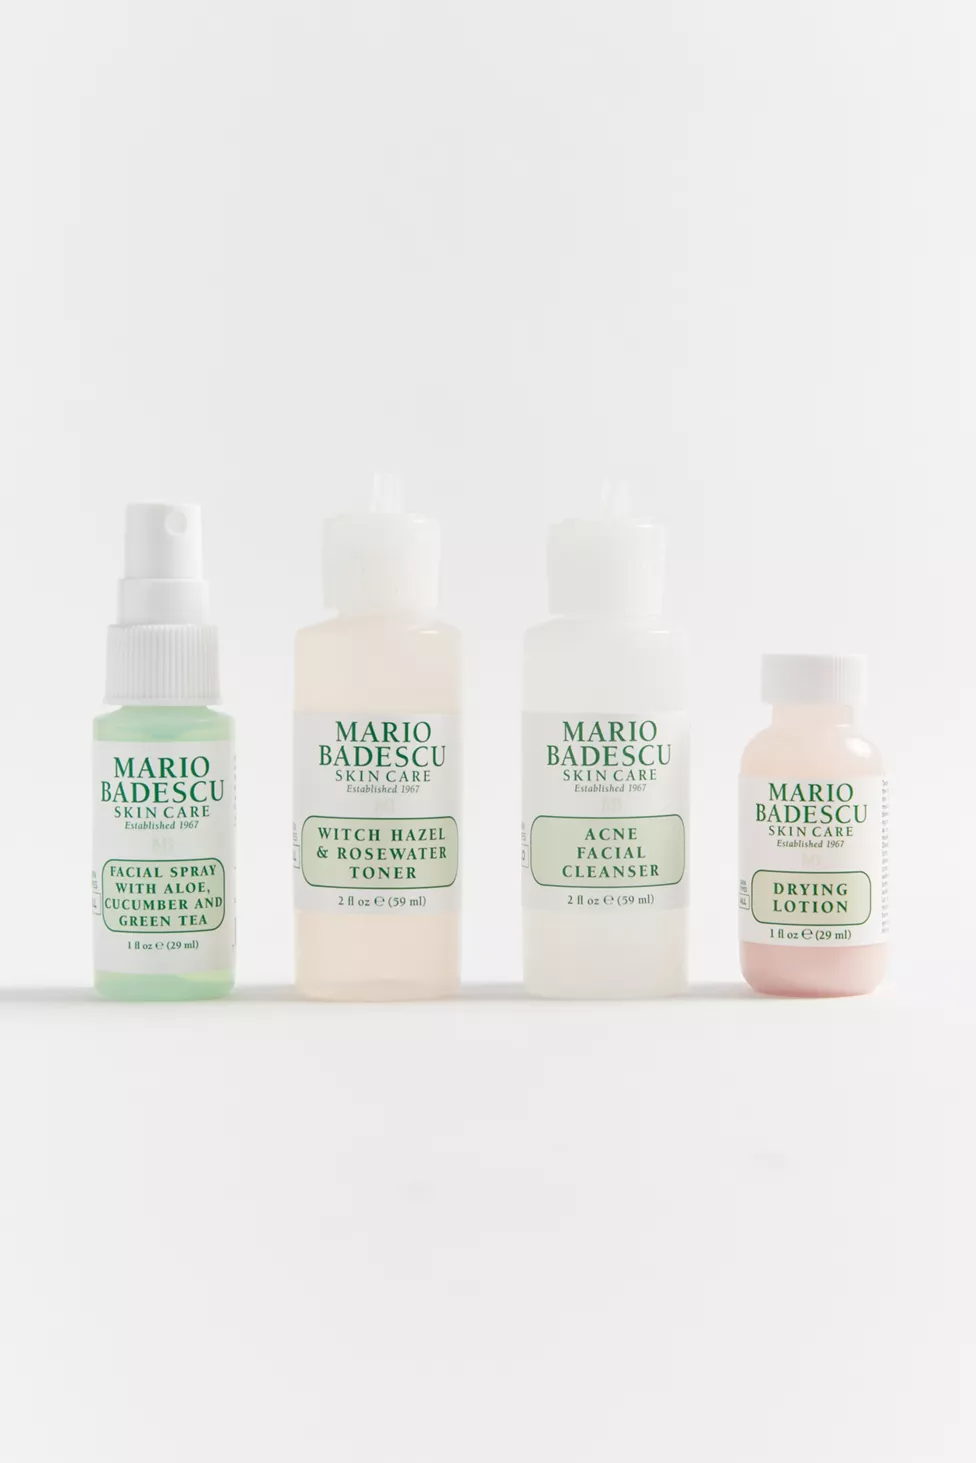 Mario Badescu Uo Exclusive Mini Must Haves Set Urban Outfitters In 2020 Facial Spray Witch Hazel Acne Skincare Set